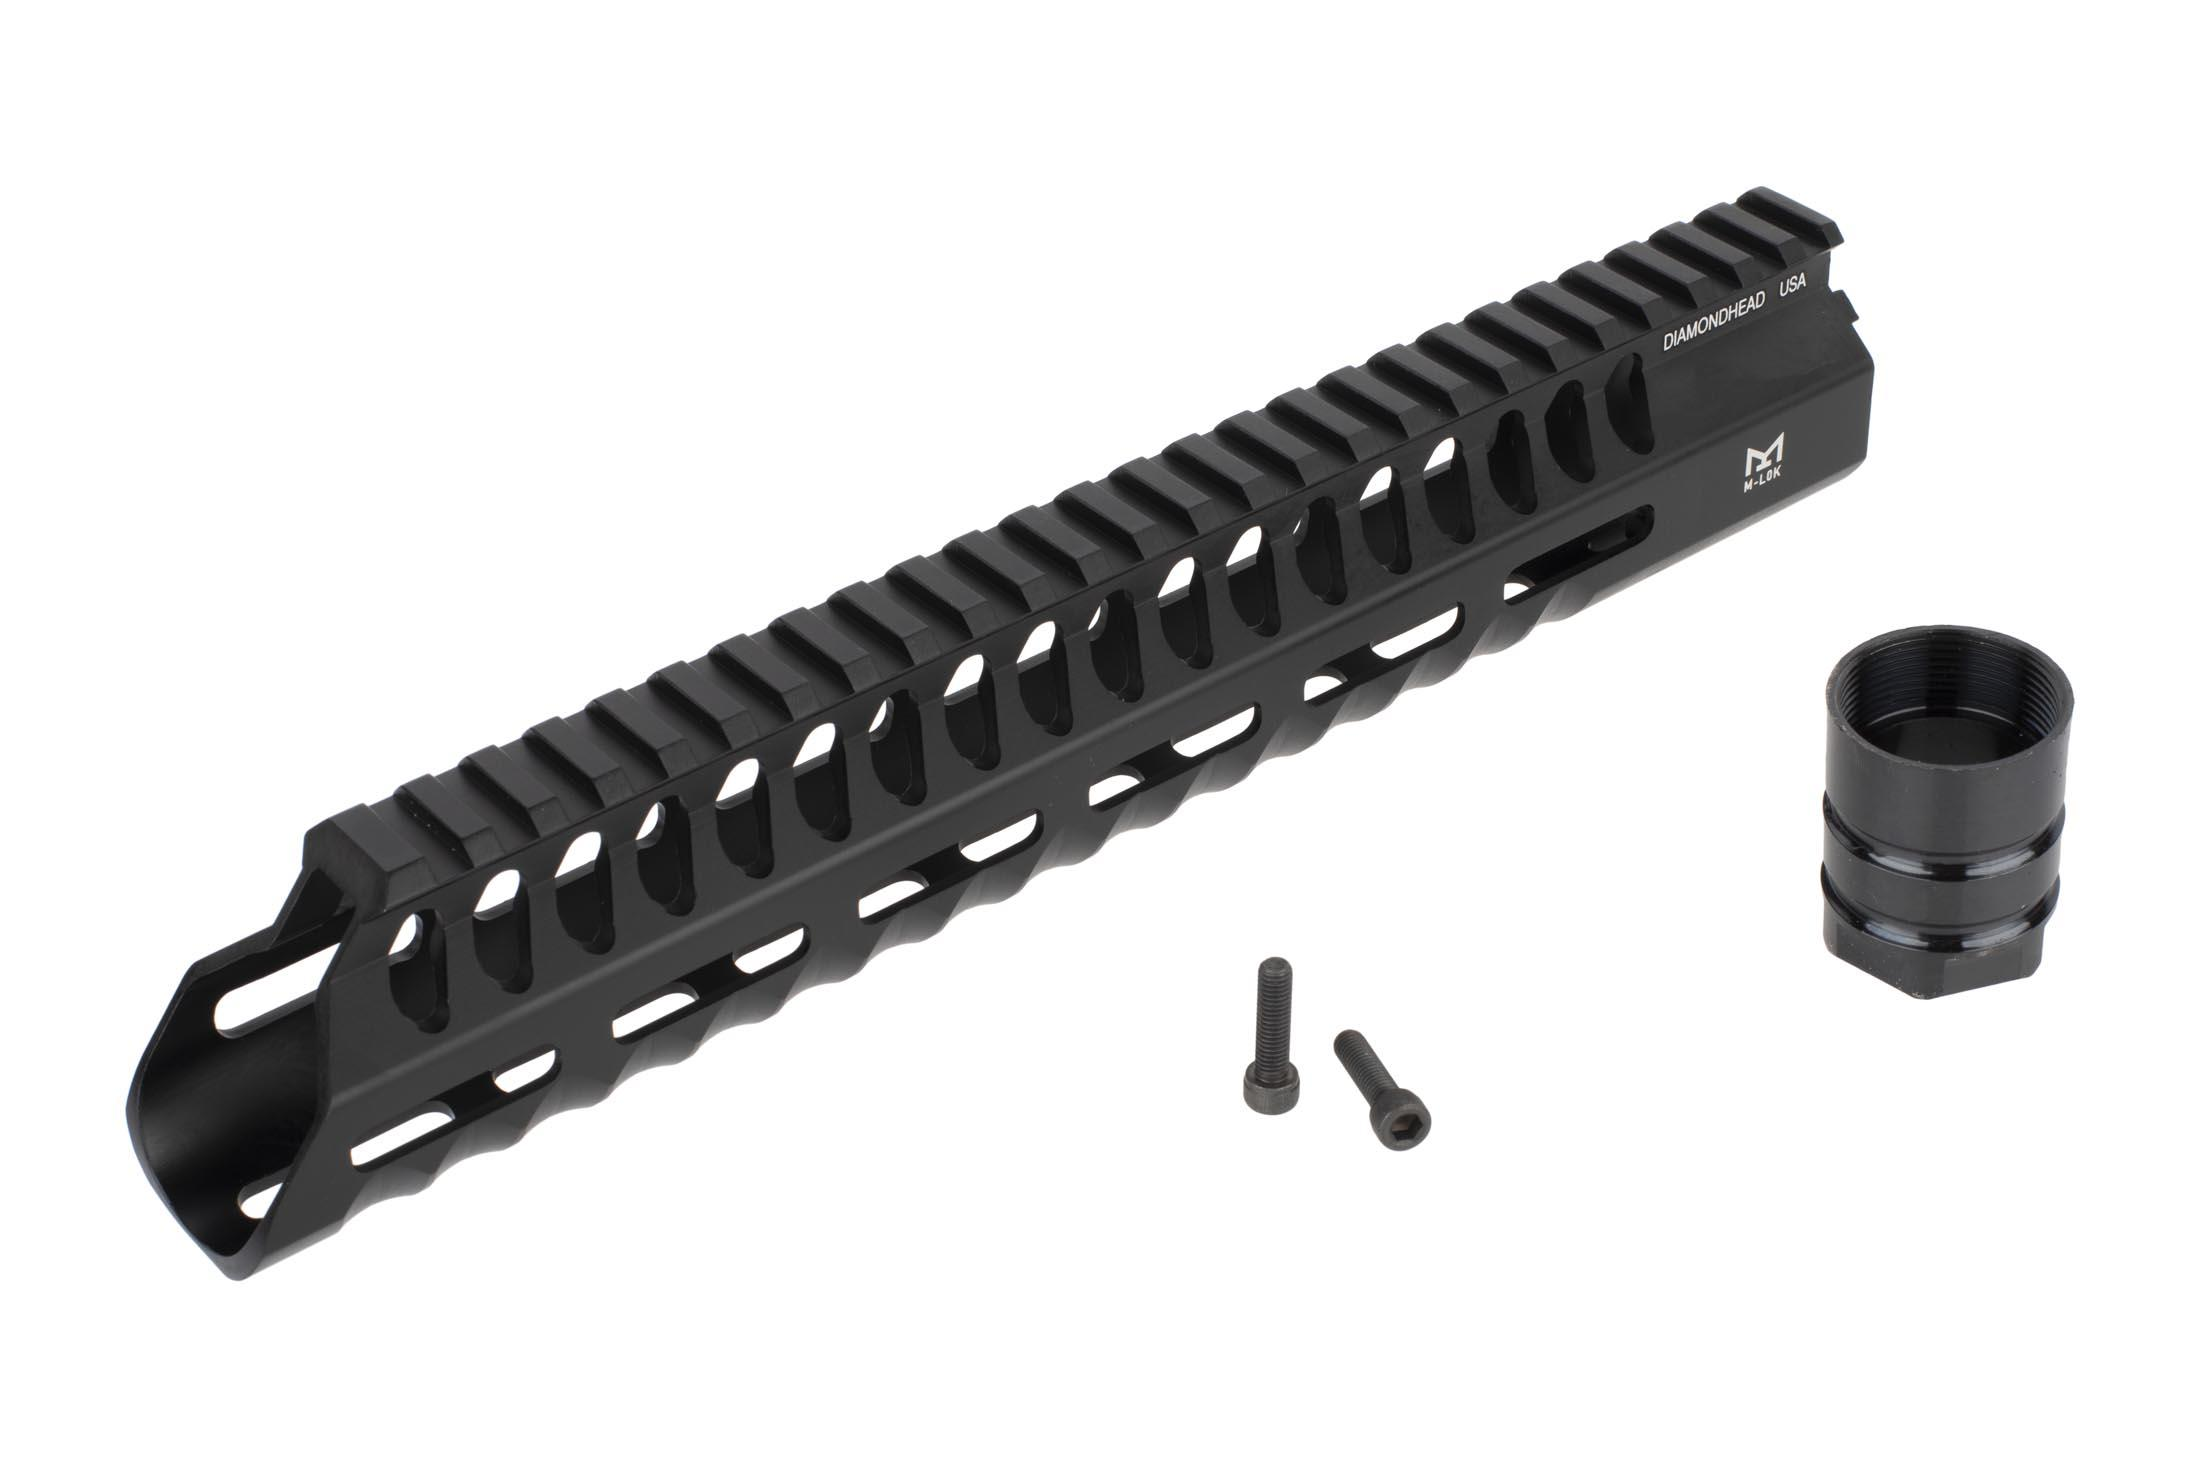 Diamondhead USA free float 10.25in VRS-T M-LOK handguard includes a steel barrel nut and mounting hardware